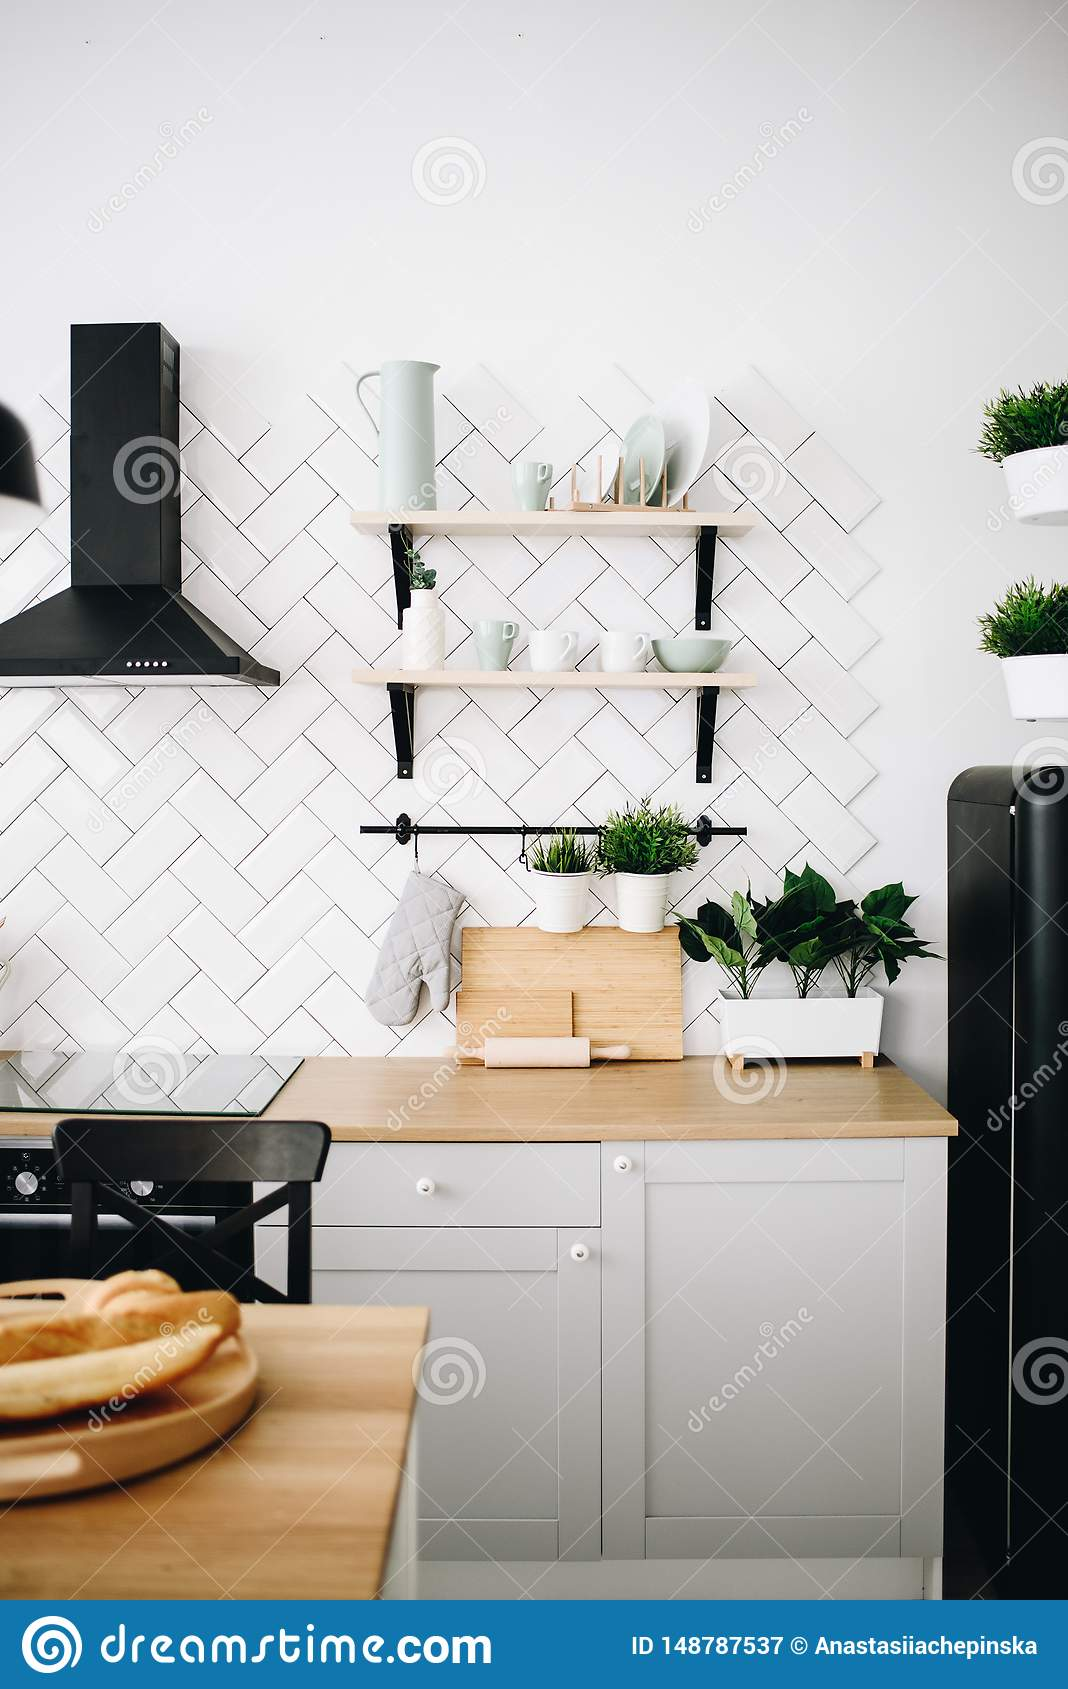 Spacious Modern Scandinavian Loft Kitchen With White Tiles And Black Appliances Bright Room Modern Interior Vertical Image Stock Image Image Of Decoration Placemat 148787537